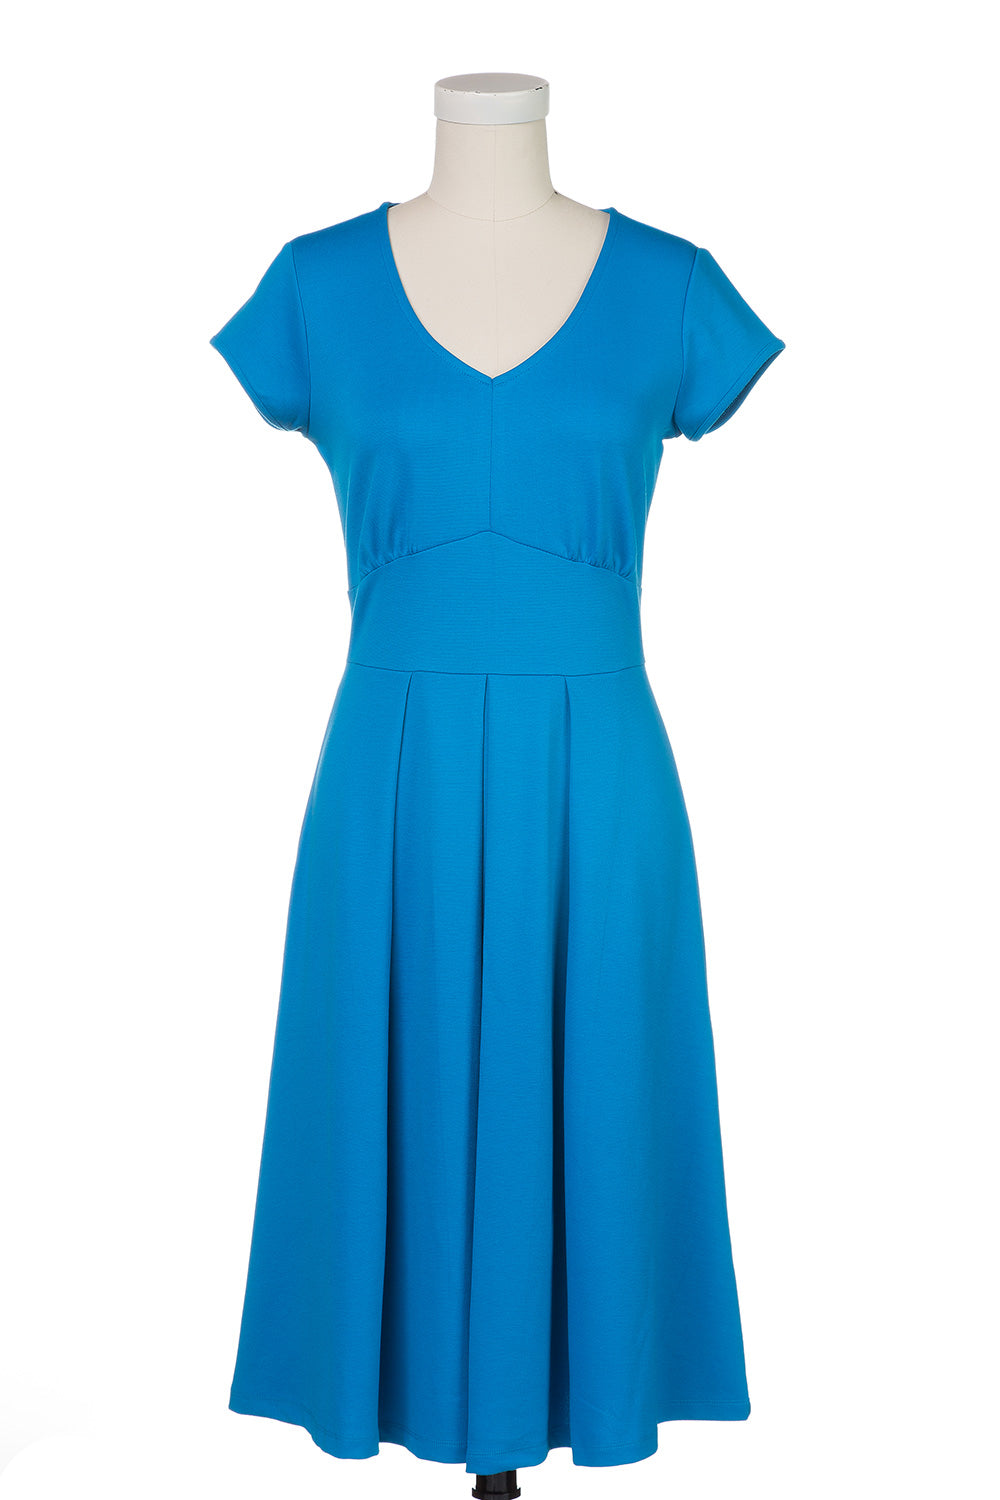 Type 1 Lunch Date Dress in Blue